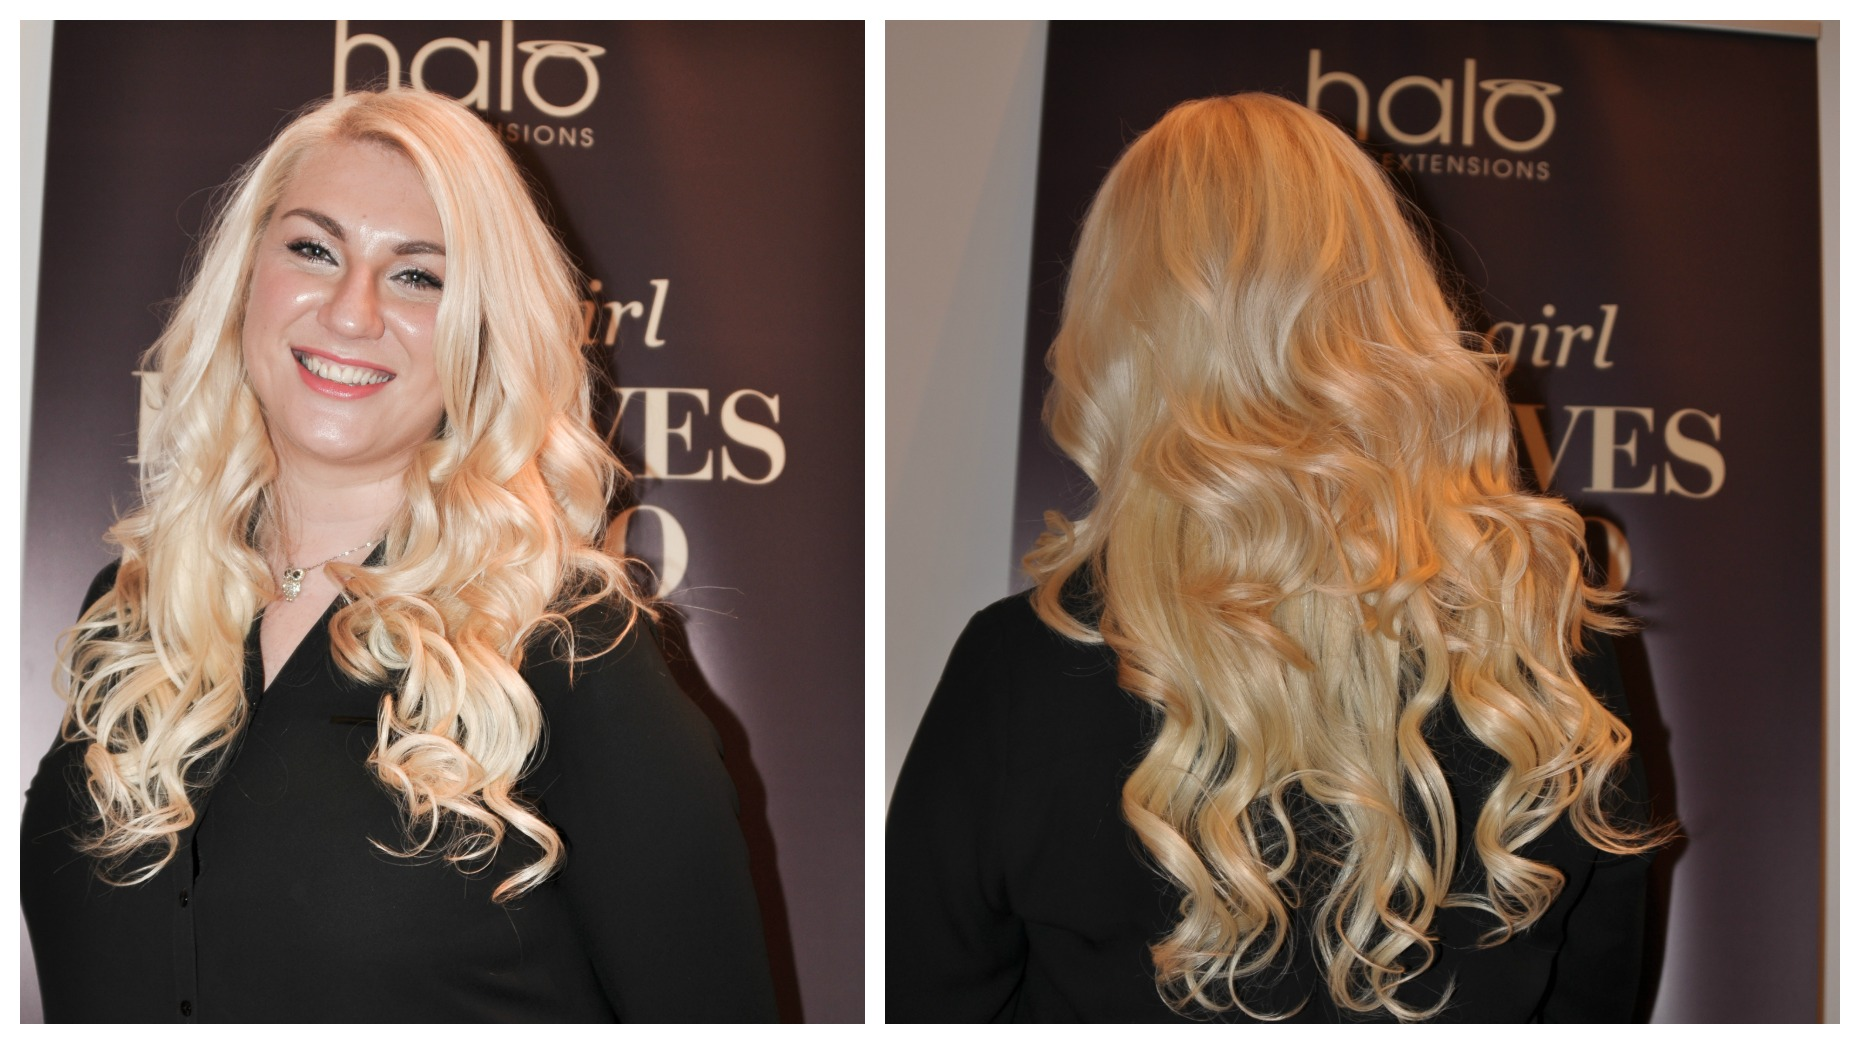 Halo Hair Extensions Event Anoushka Loves